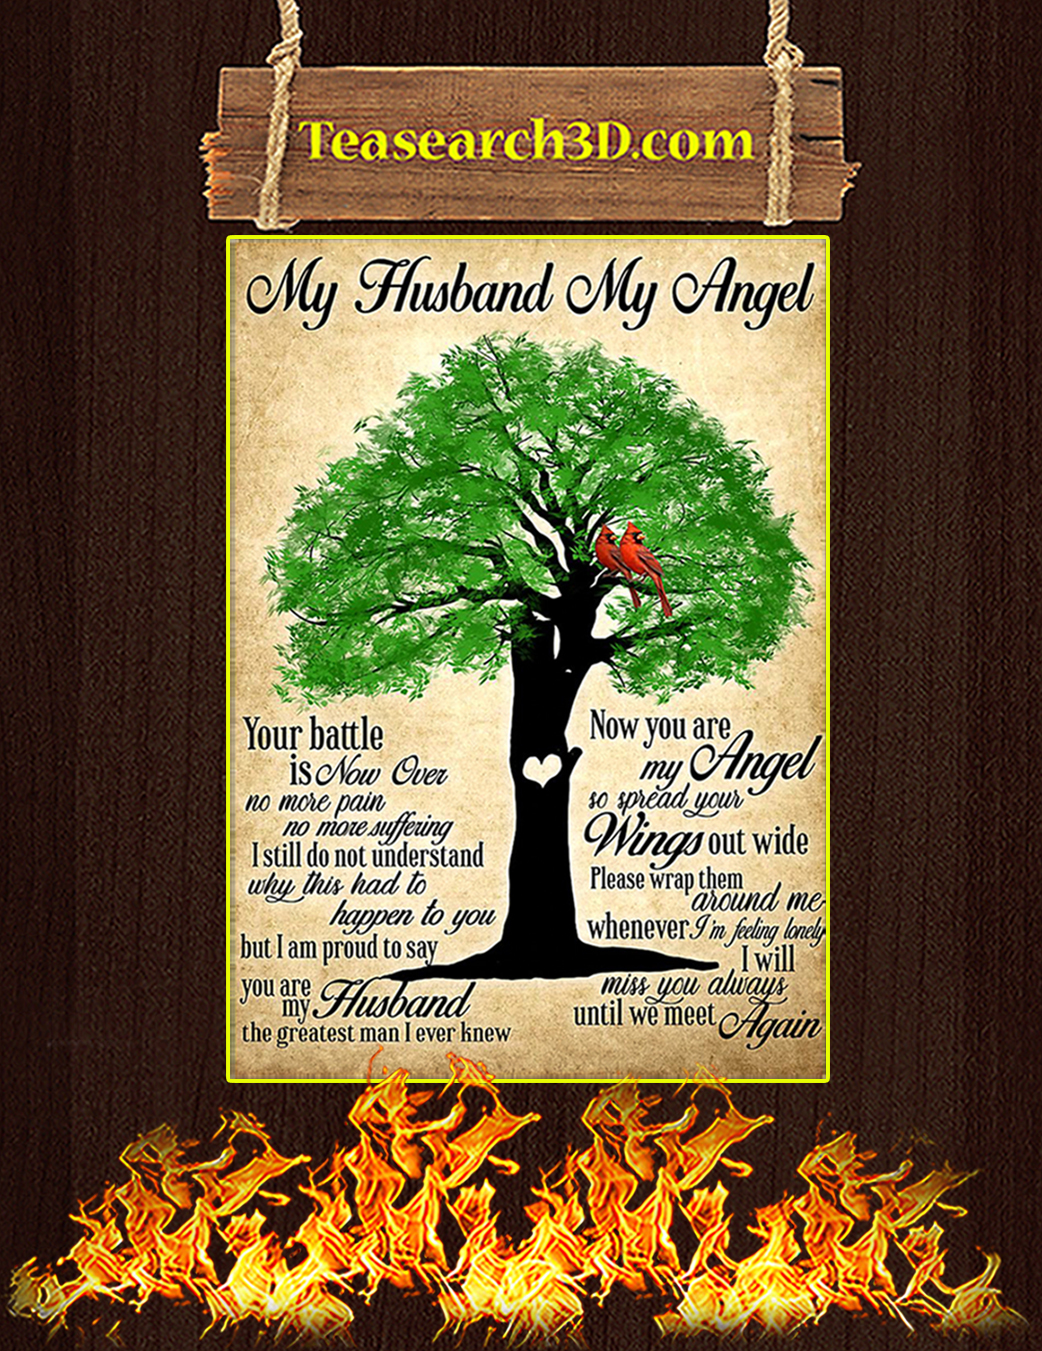 My husband my angel poster A1